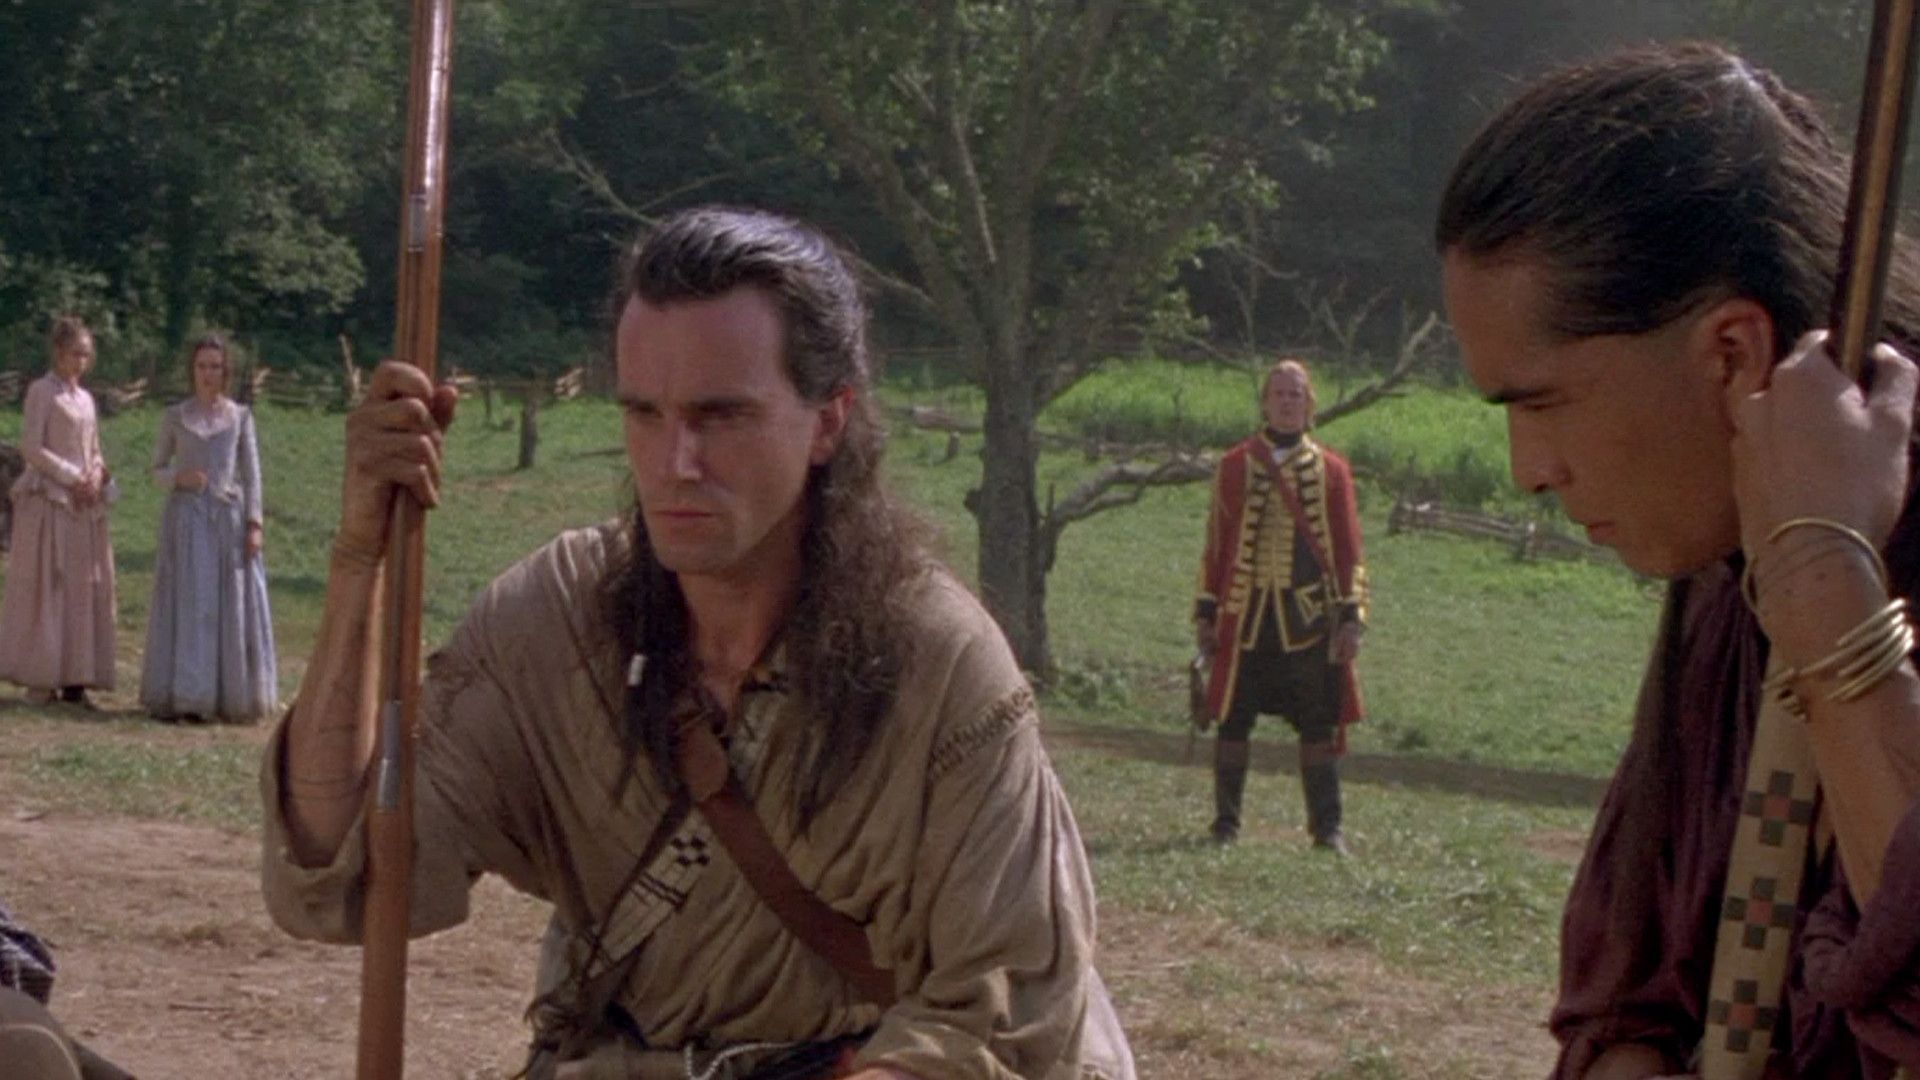 The Last of the Mohicans (10-12-11)